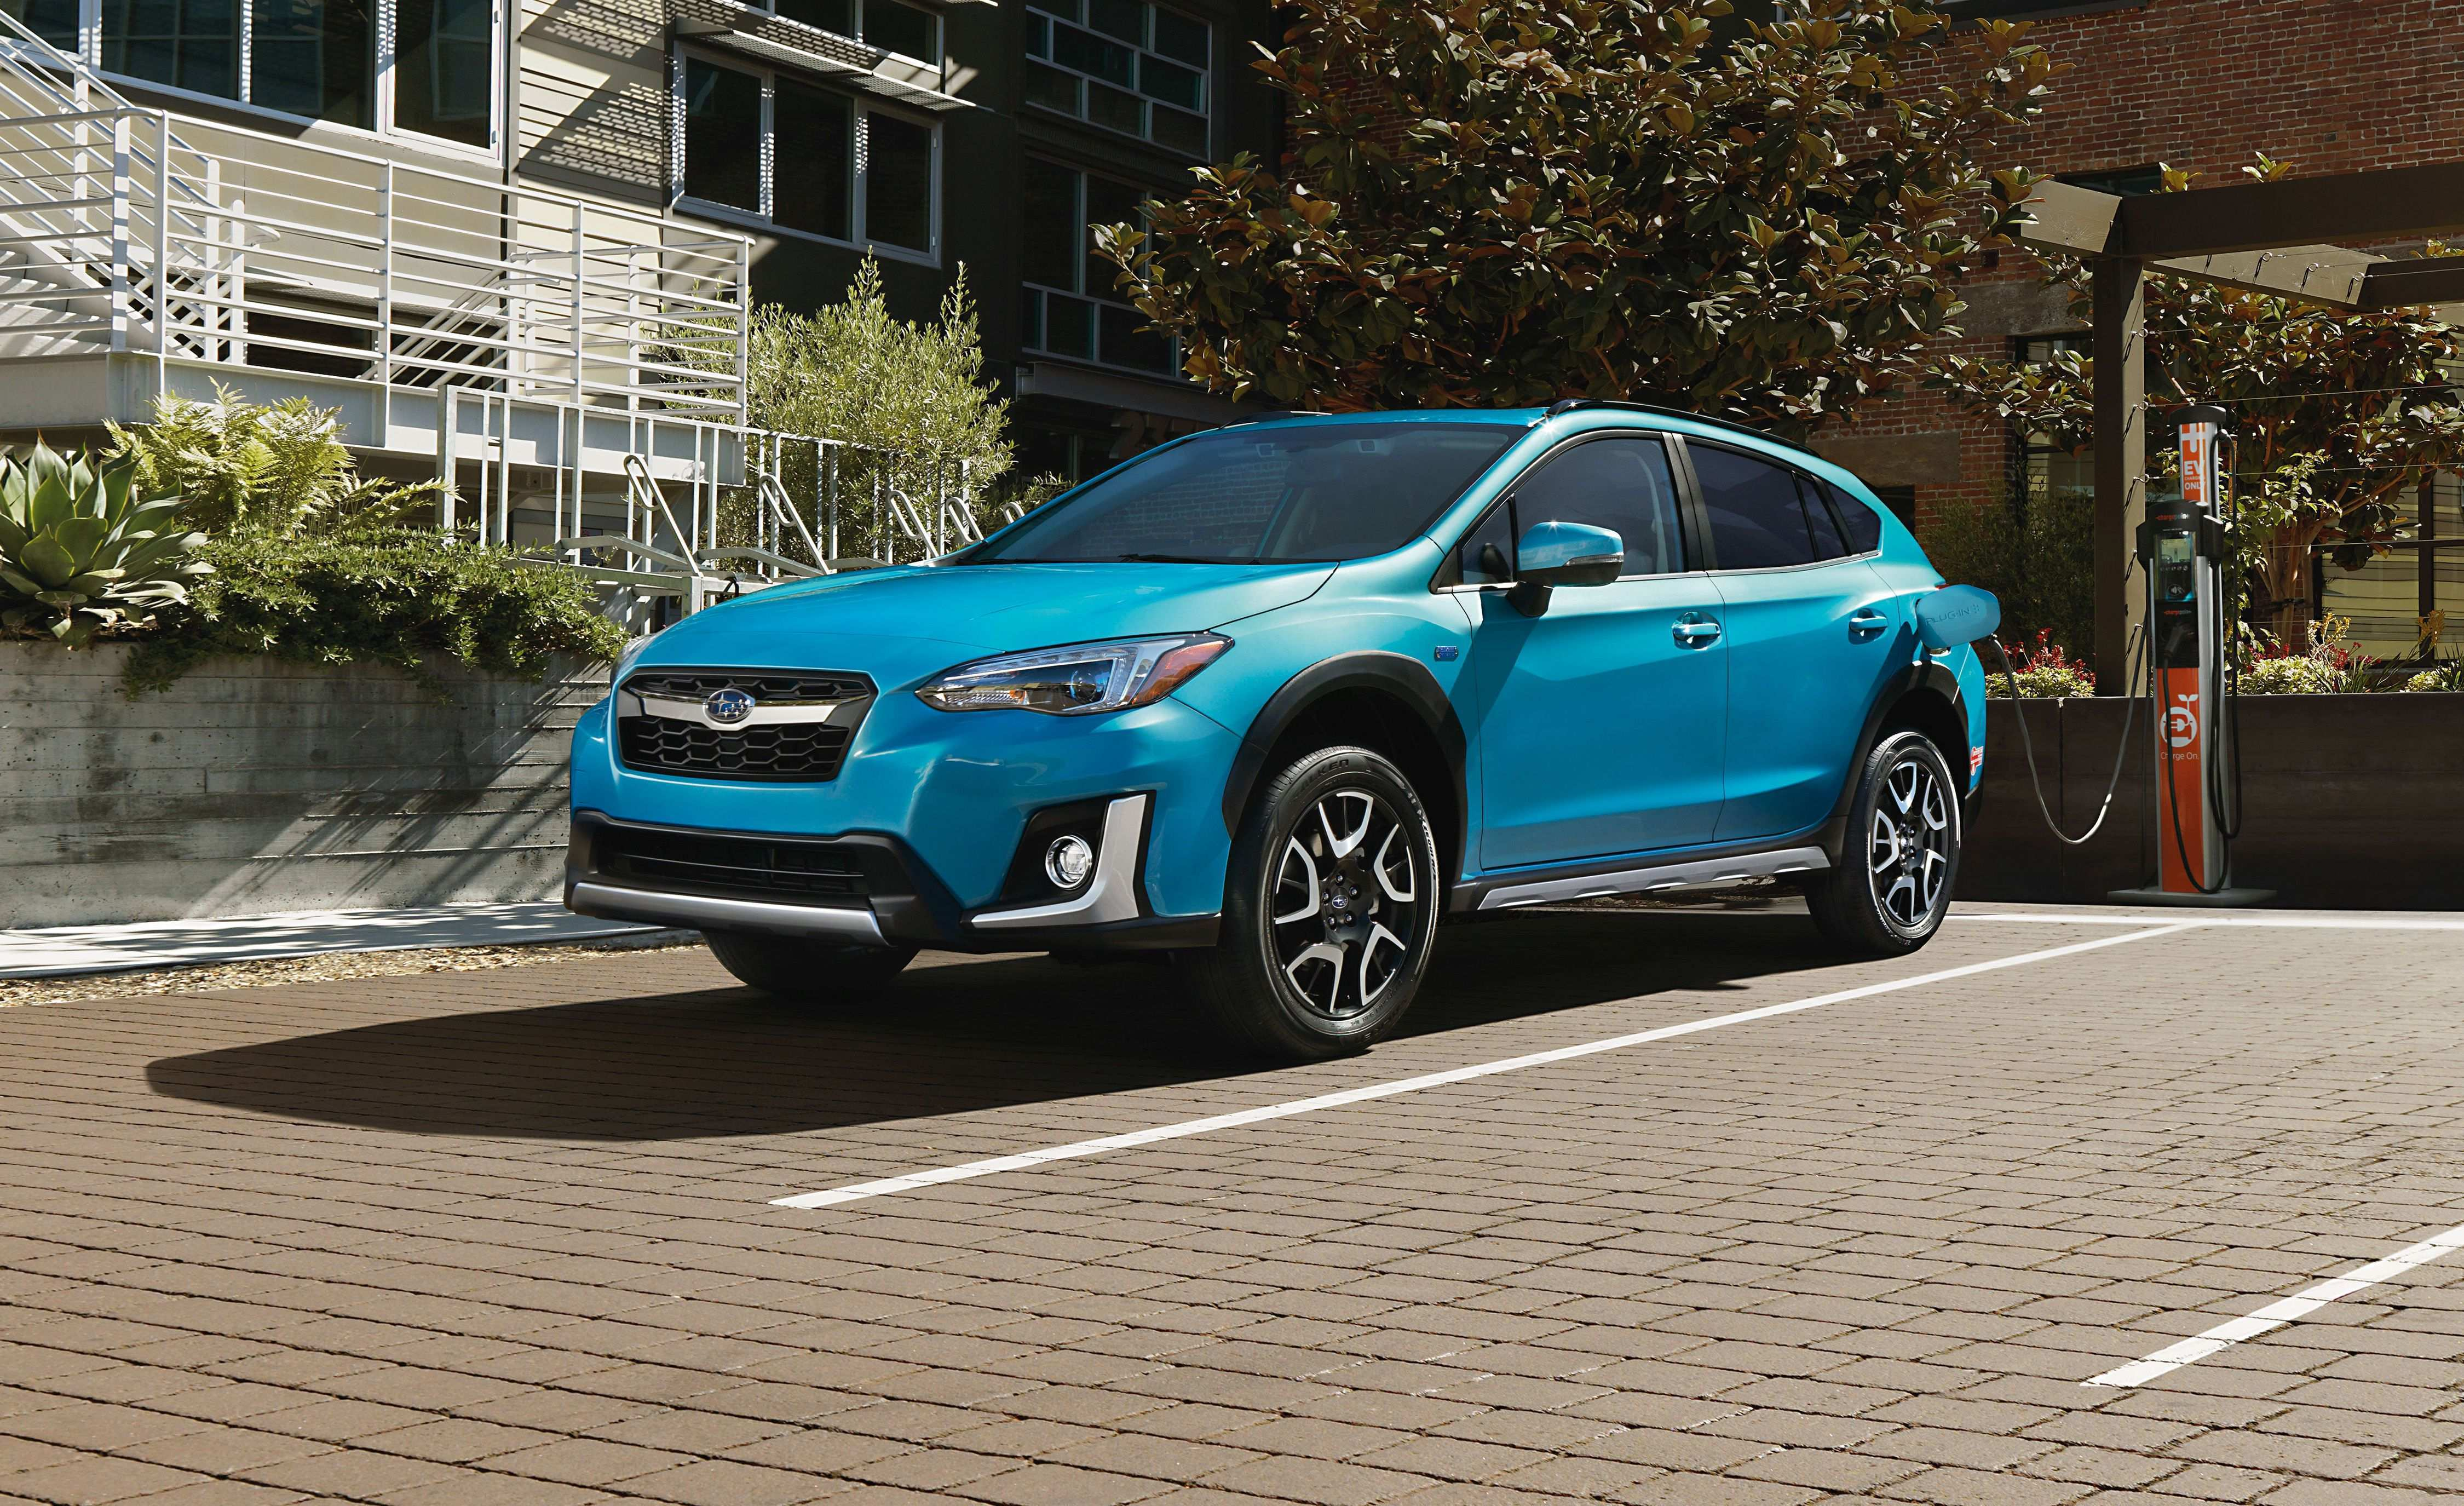 89 Best Review 2019 Subaru Hybrid Wallpaper by 2019 Subaru Hybrid